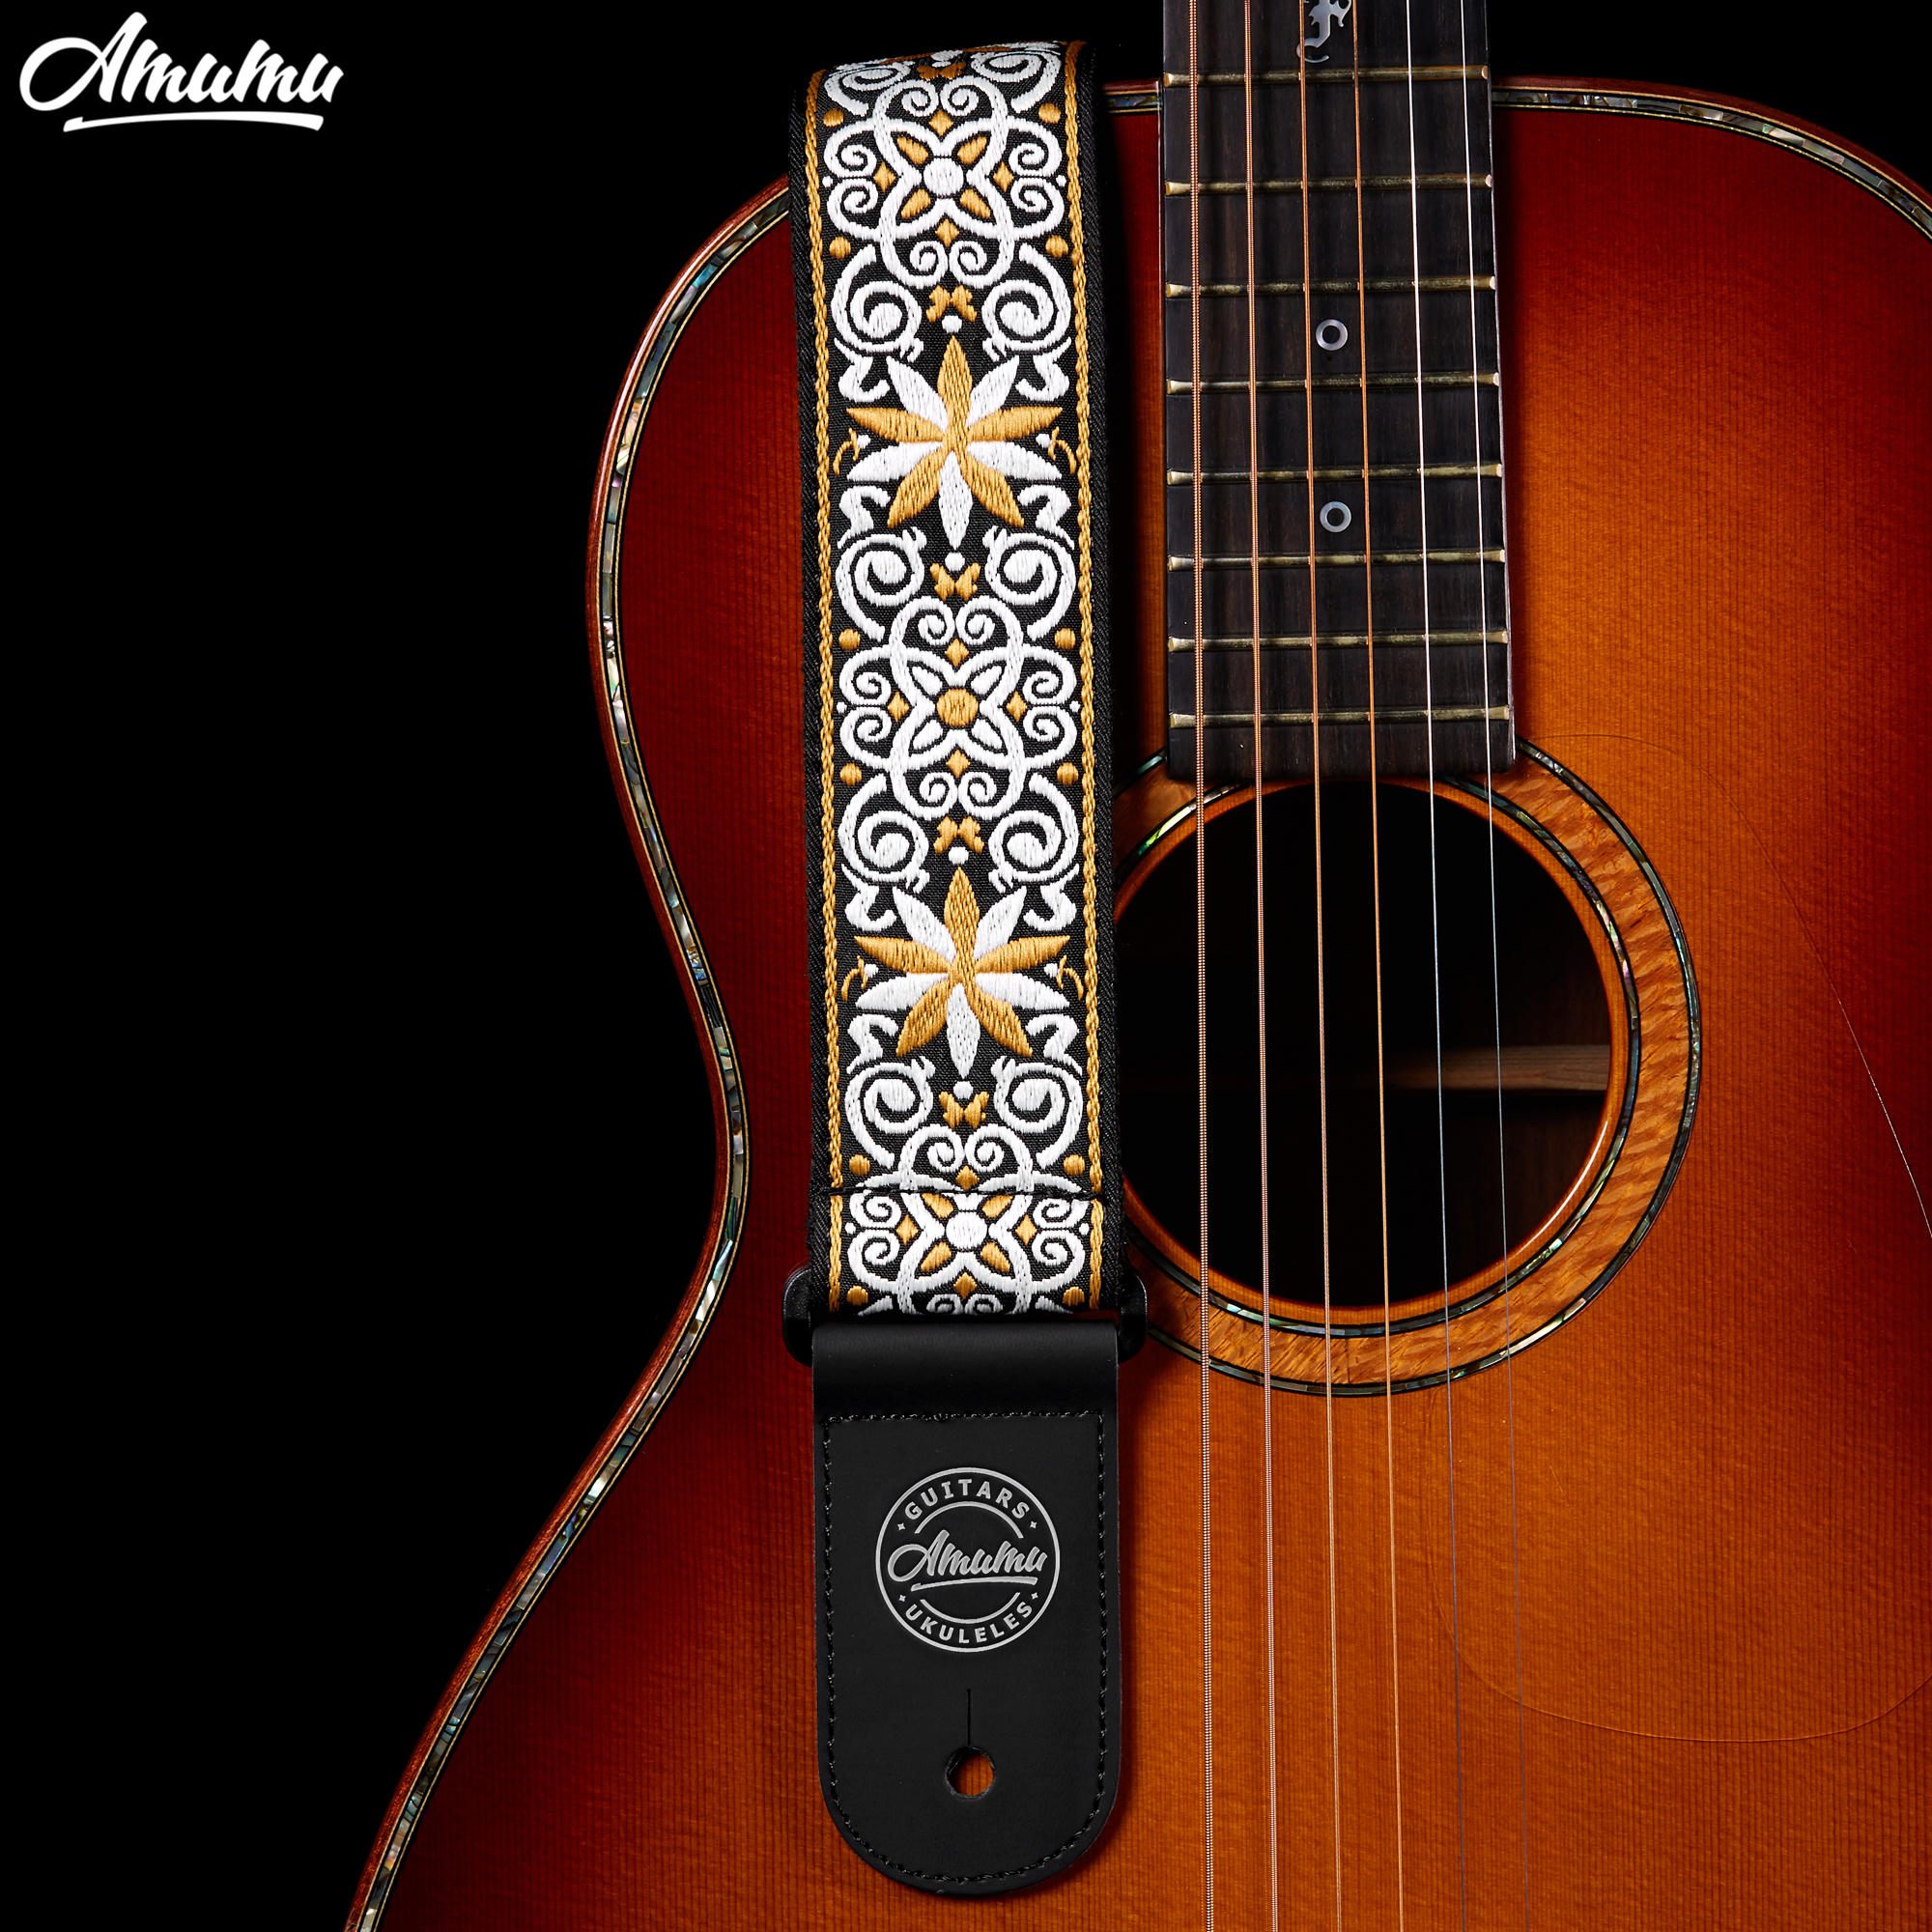 Amumu Woodstock jacquard Cotton Guitar Straps with Leather End for Folk Acoustic Electric Guitar 89-156cm Length 5cm Width S110 acoustic electric guitar strap woven cloth leather end police line do not cross width 5cm 2 length 92 154cm 36 60 yellow black